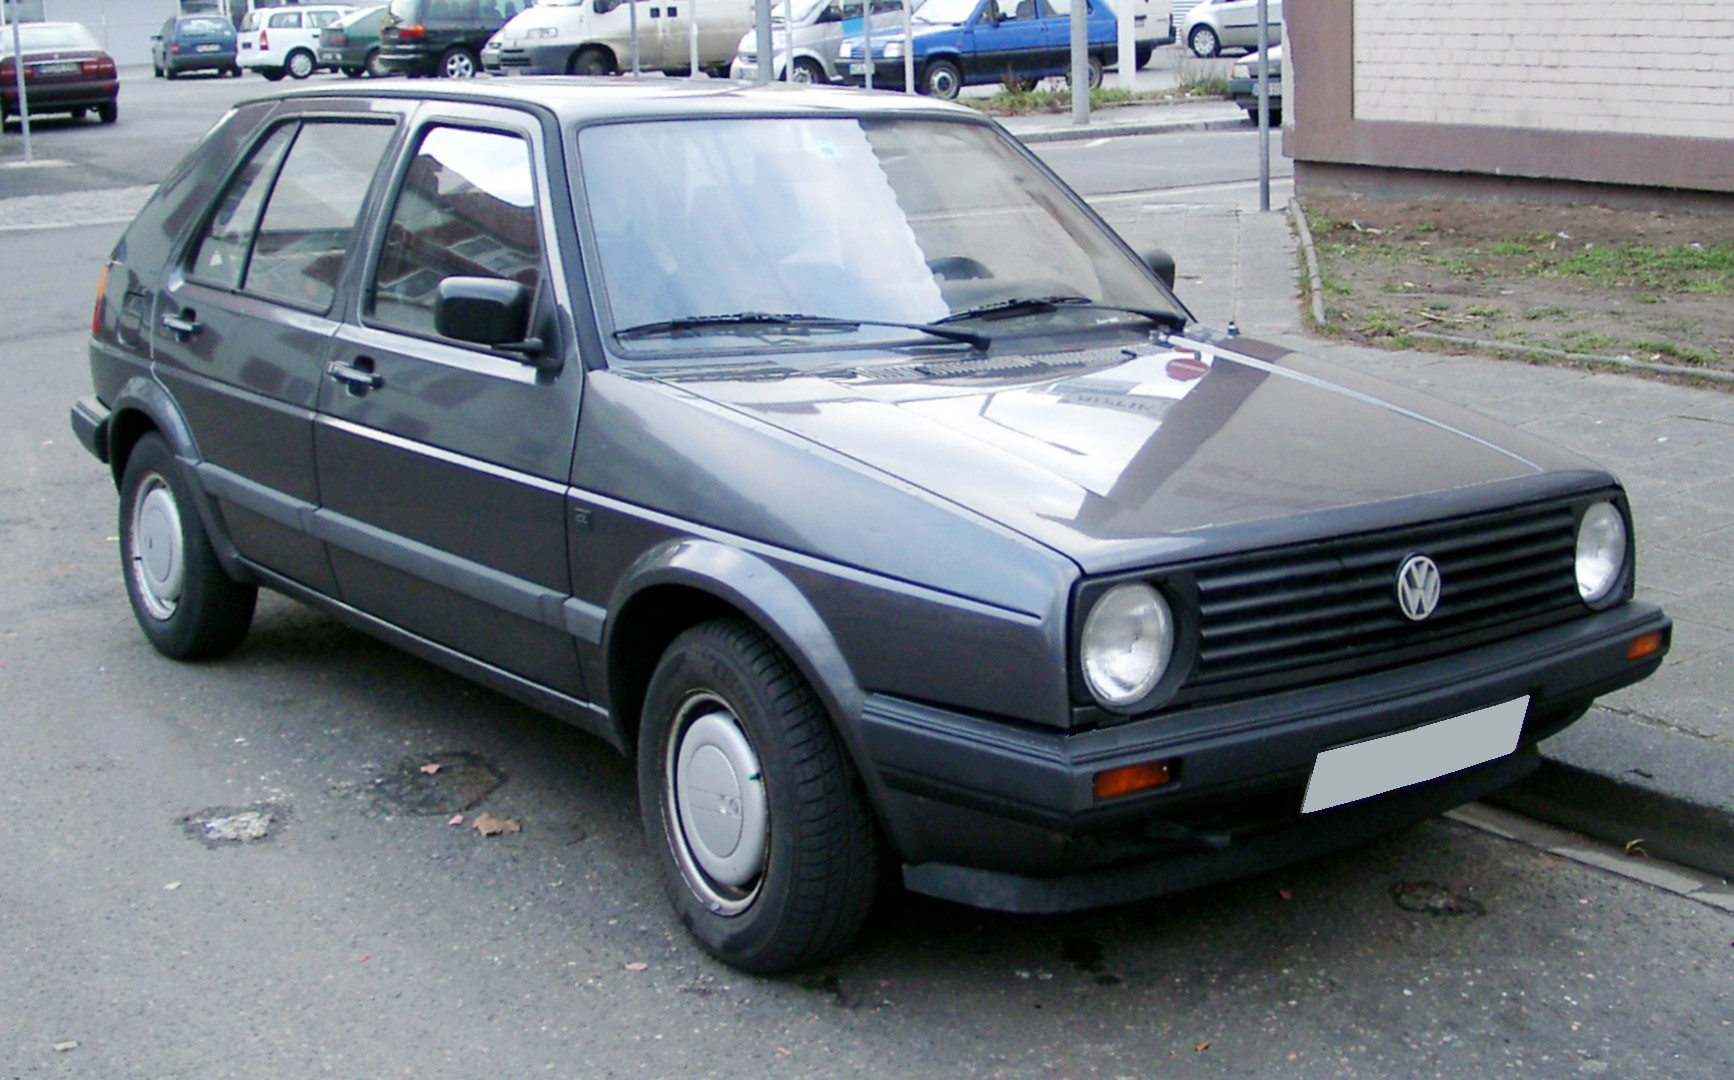 1991 Volkswagen Golf I Cabrio 155 Pictures Information And Vw Cabriolet Wiring Diagrams 10